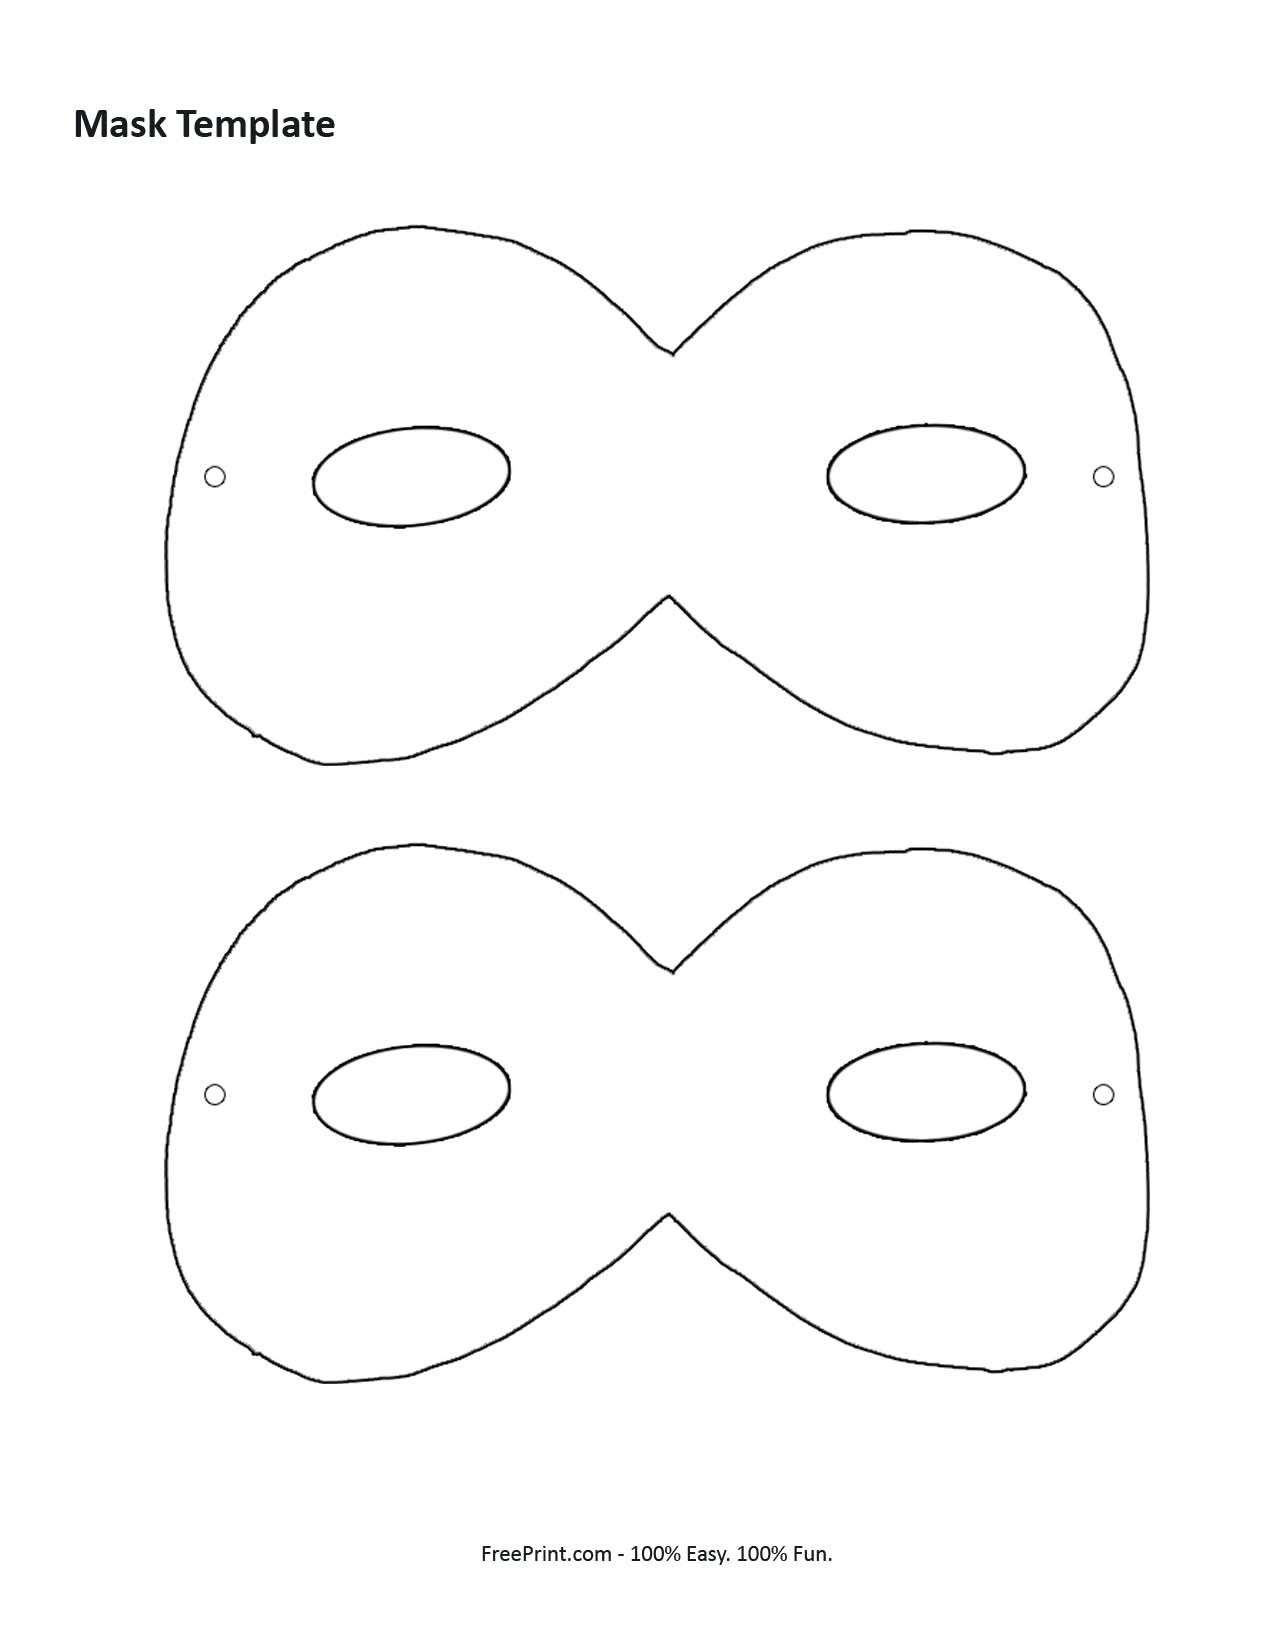 Customize Your Free Printable Mask Template | Manualidades | Pinterest